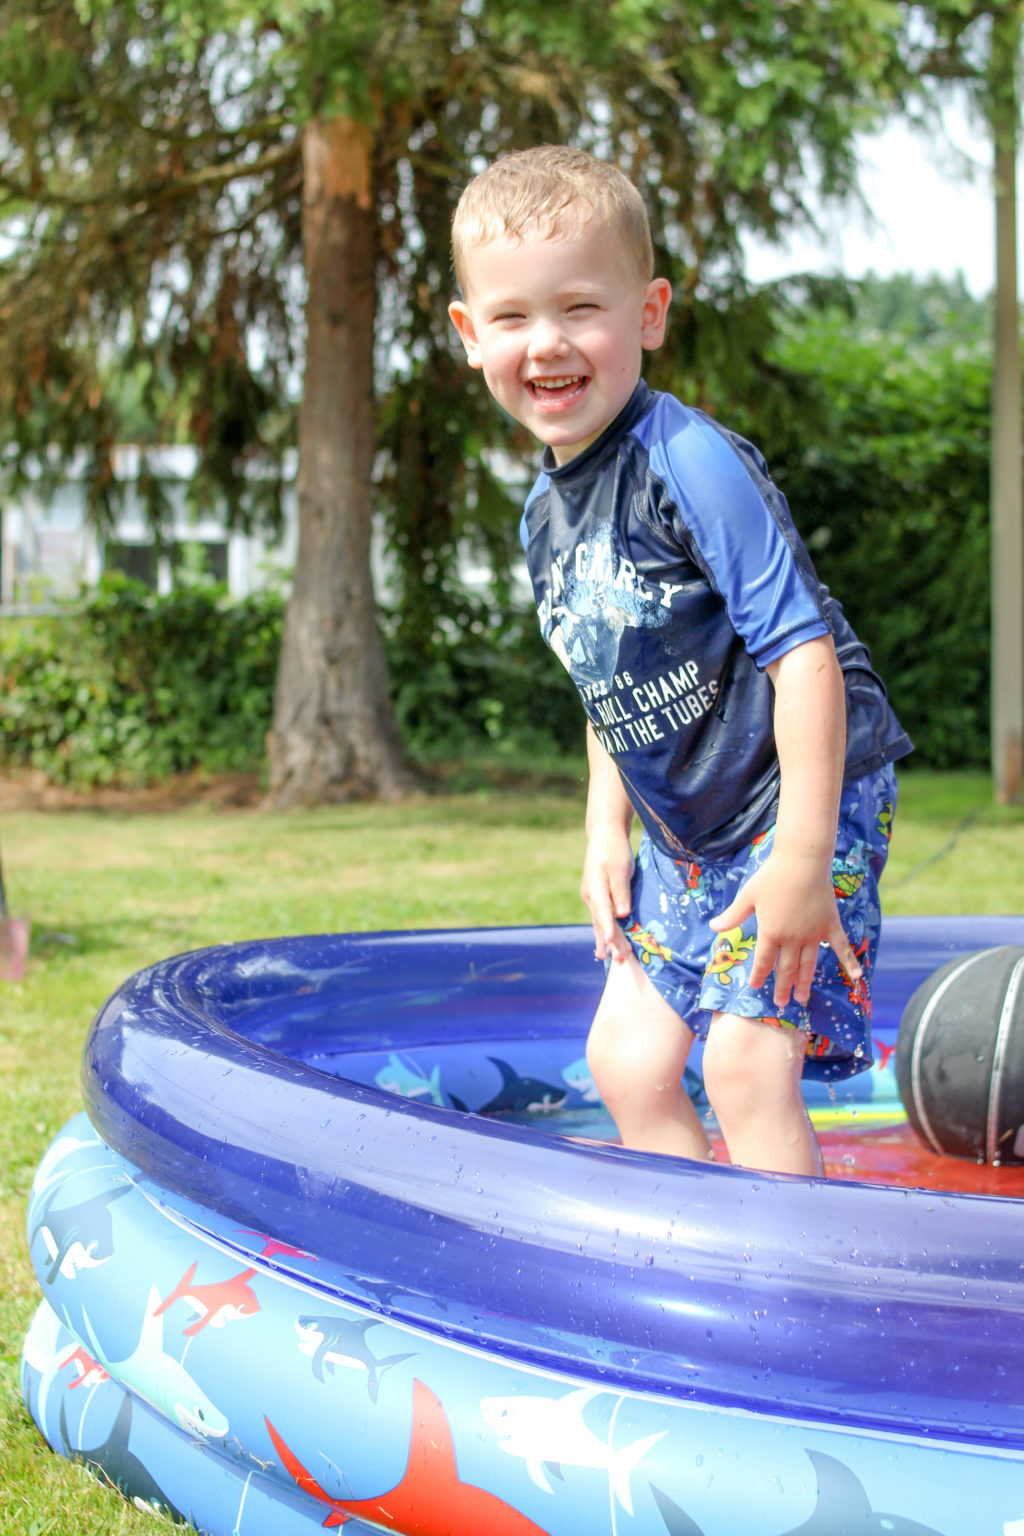 Blond preschool boy standing in wading pool with a huge grin